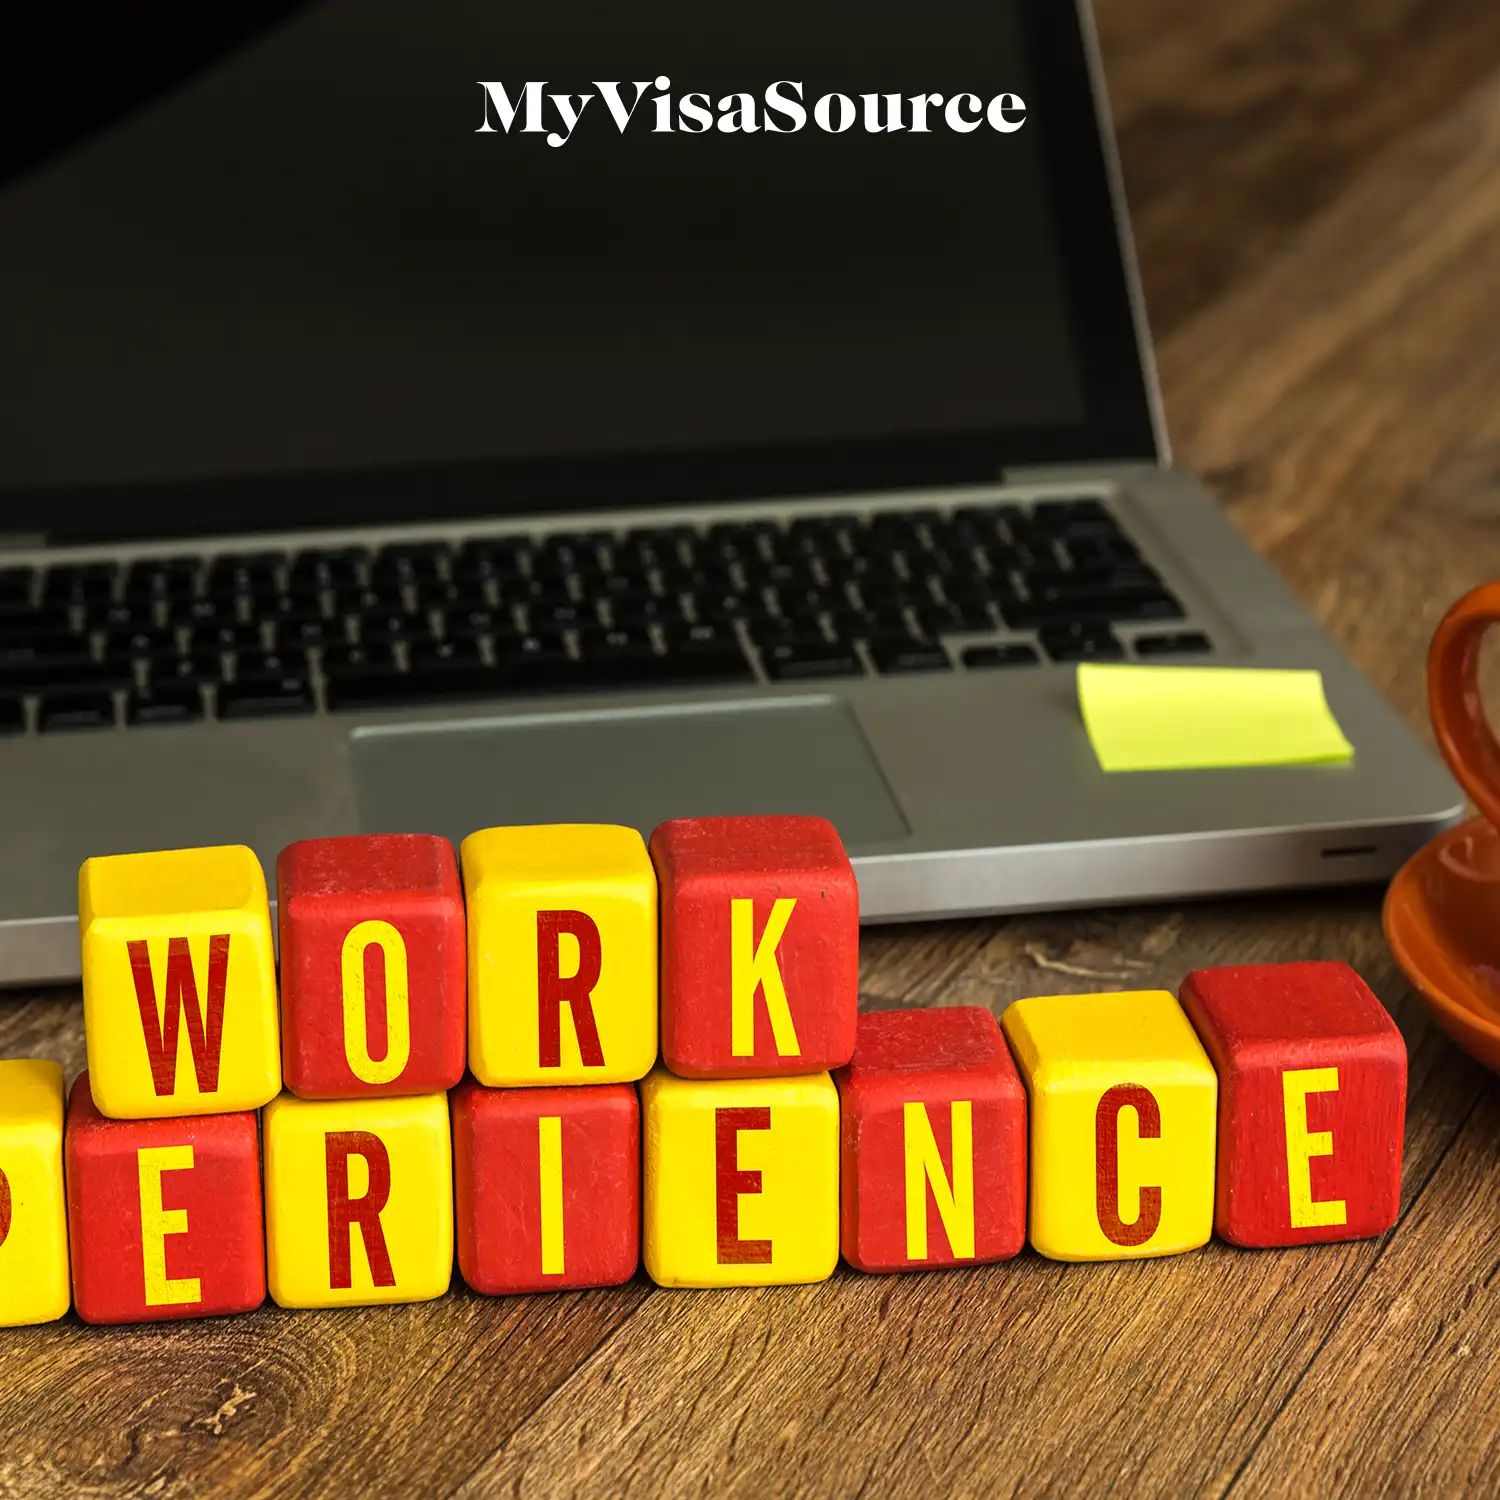 work experience spelled out in blocks in front of a laptop by my visa source